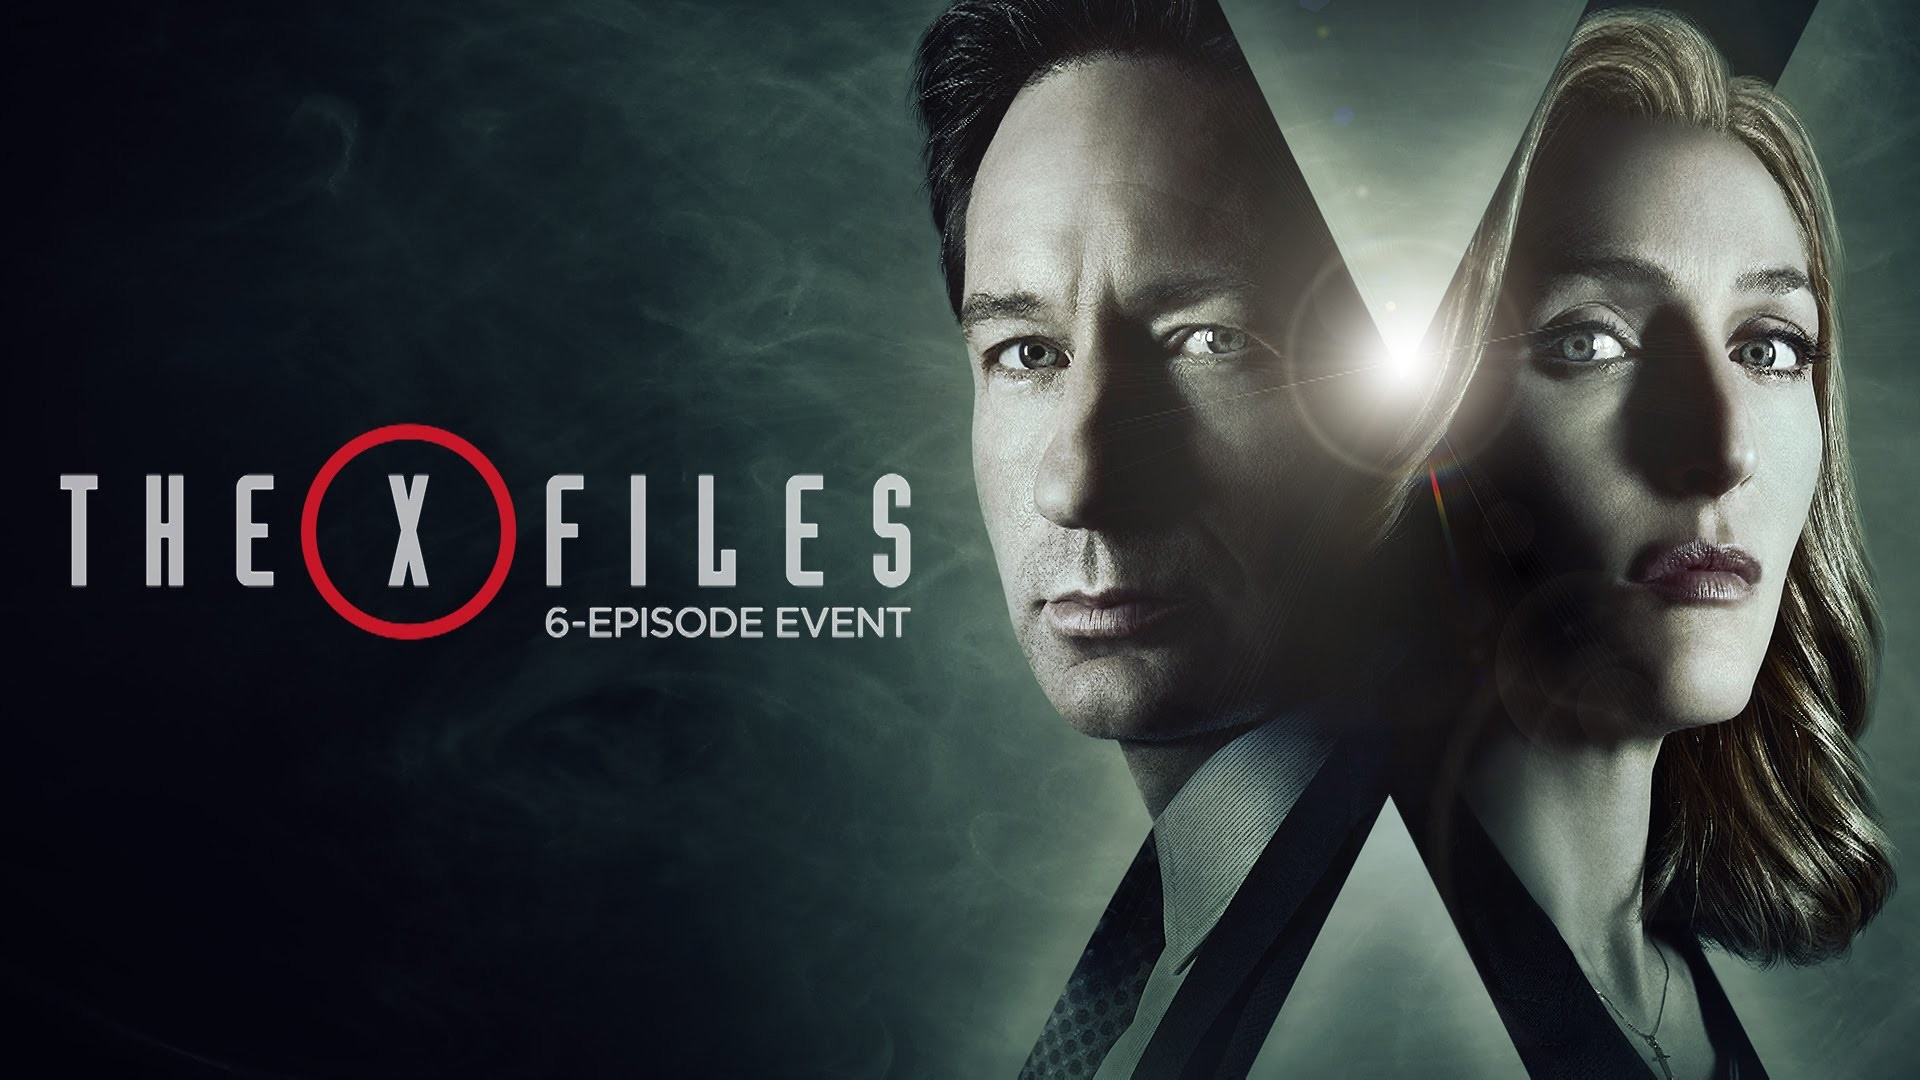 These Images Will Help You Understand The Words X Files Wallpaper I Want To Believe In Detail All Found Global Network And Can Be Used